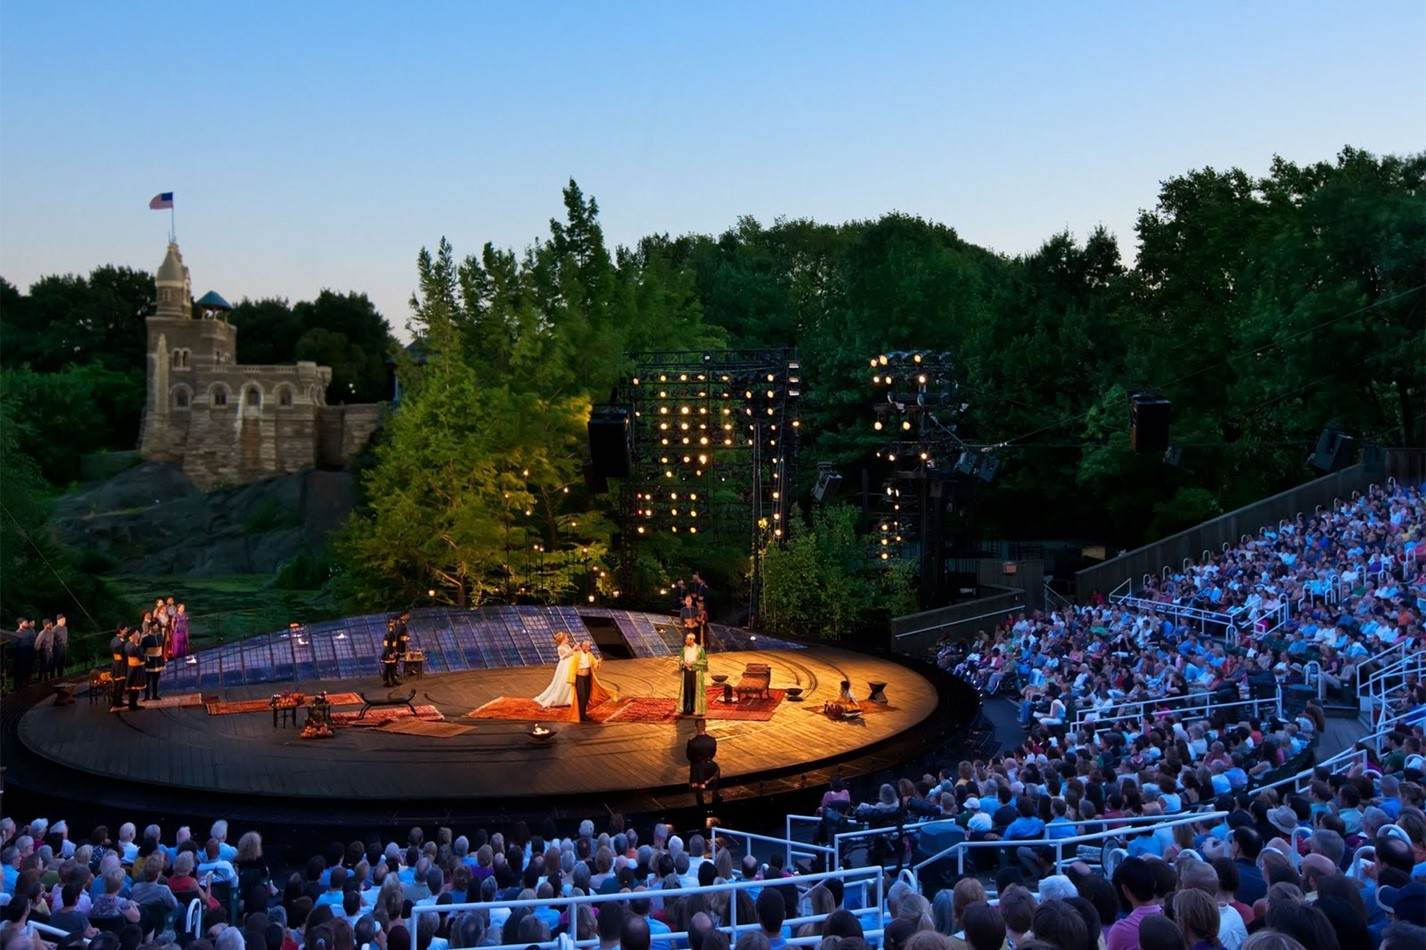 """New York City's Central Park hosts free """"Shakespeare in the Park"""" performances of The Taming of the Shrew (May24-June26) and Troillus & Cressida (July 19-Aug14).  Source: timeout.com"""